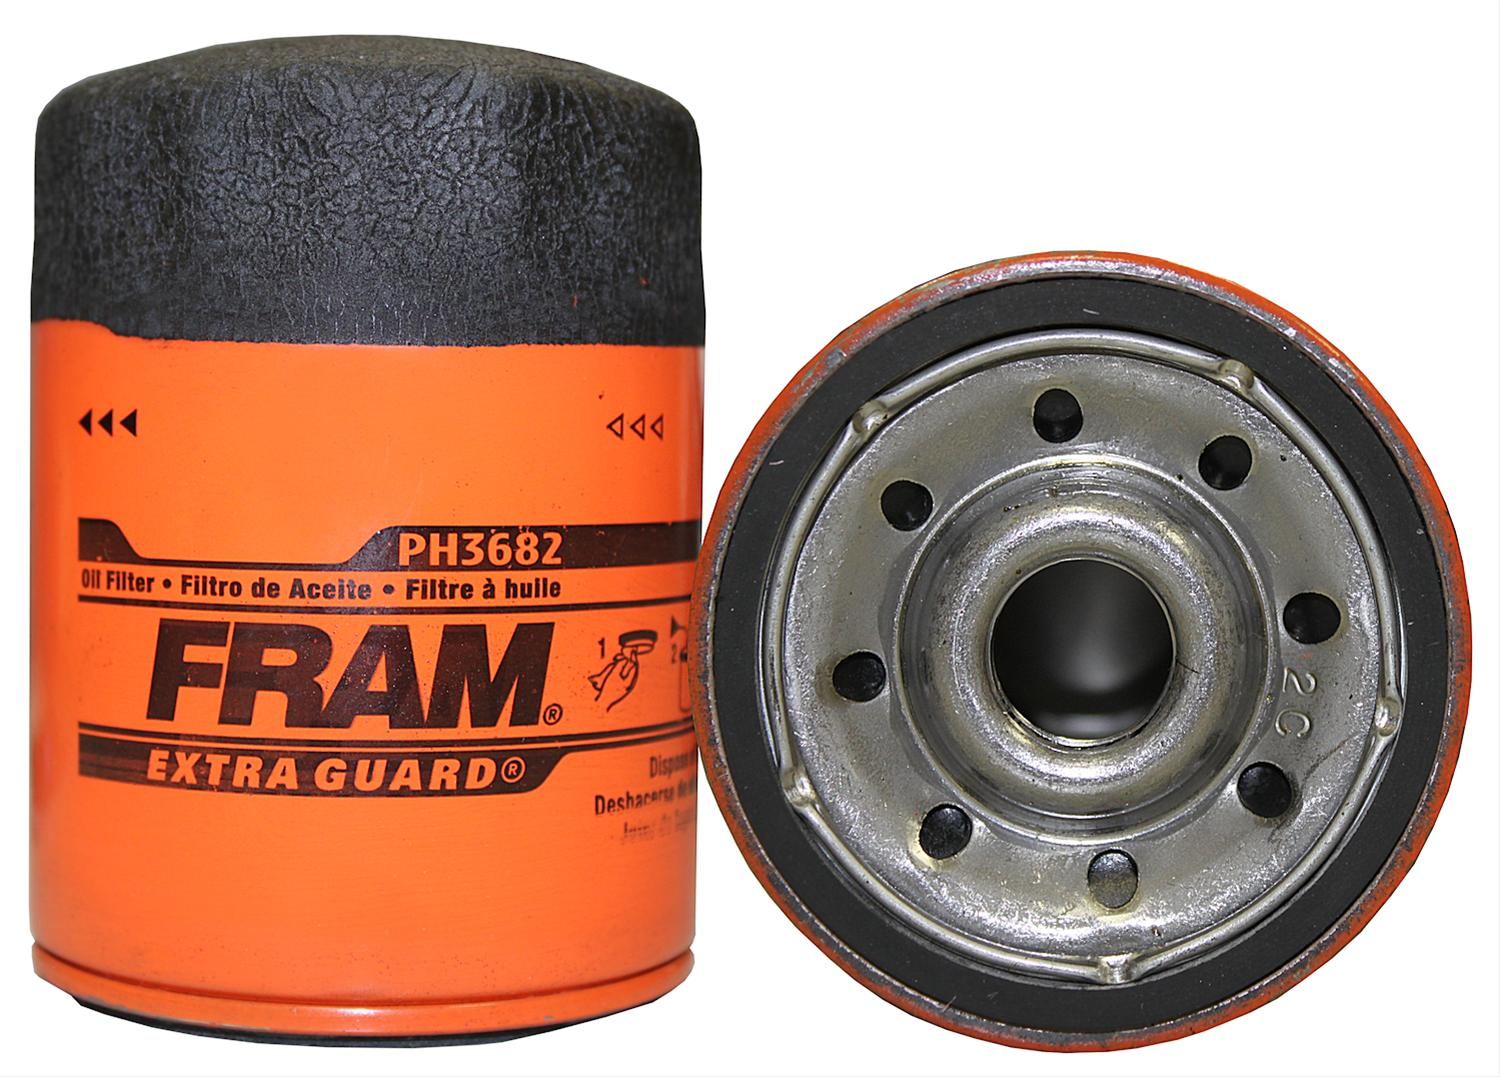 Fram Extra Guard Oil Filter Ph3682